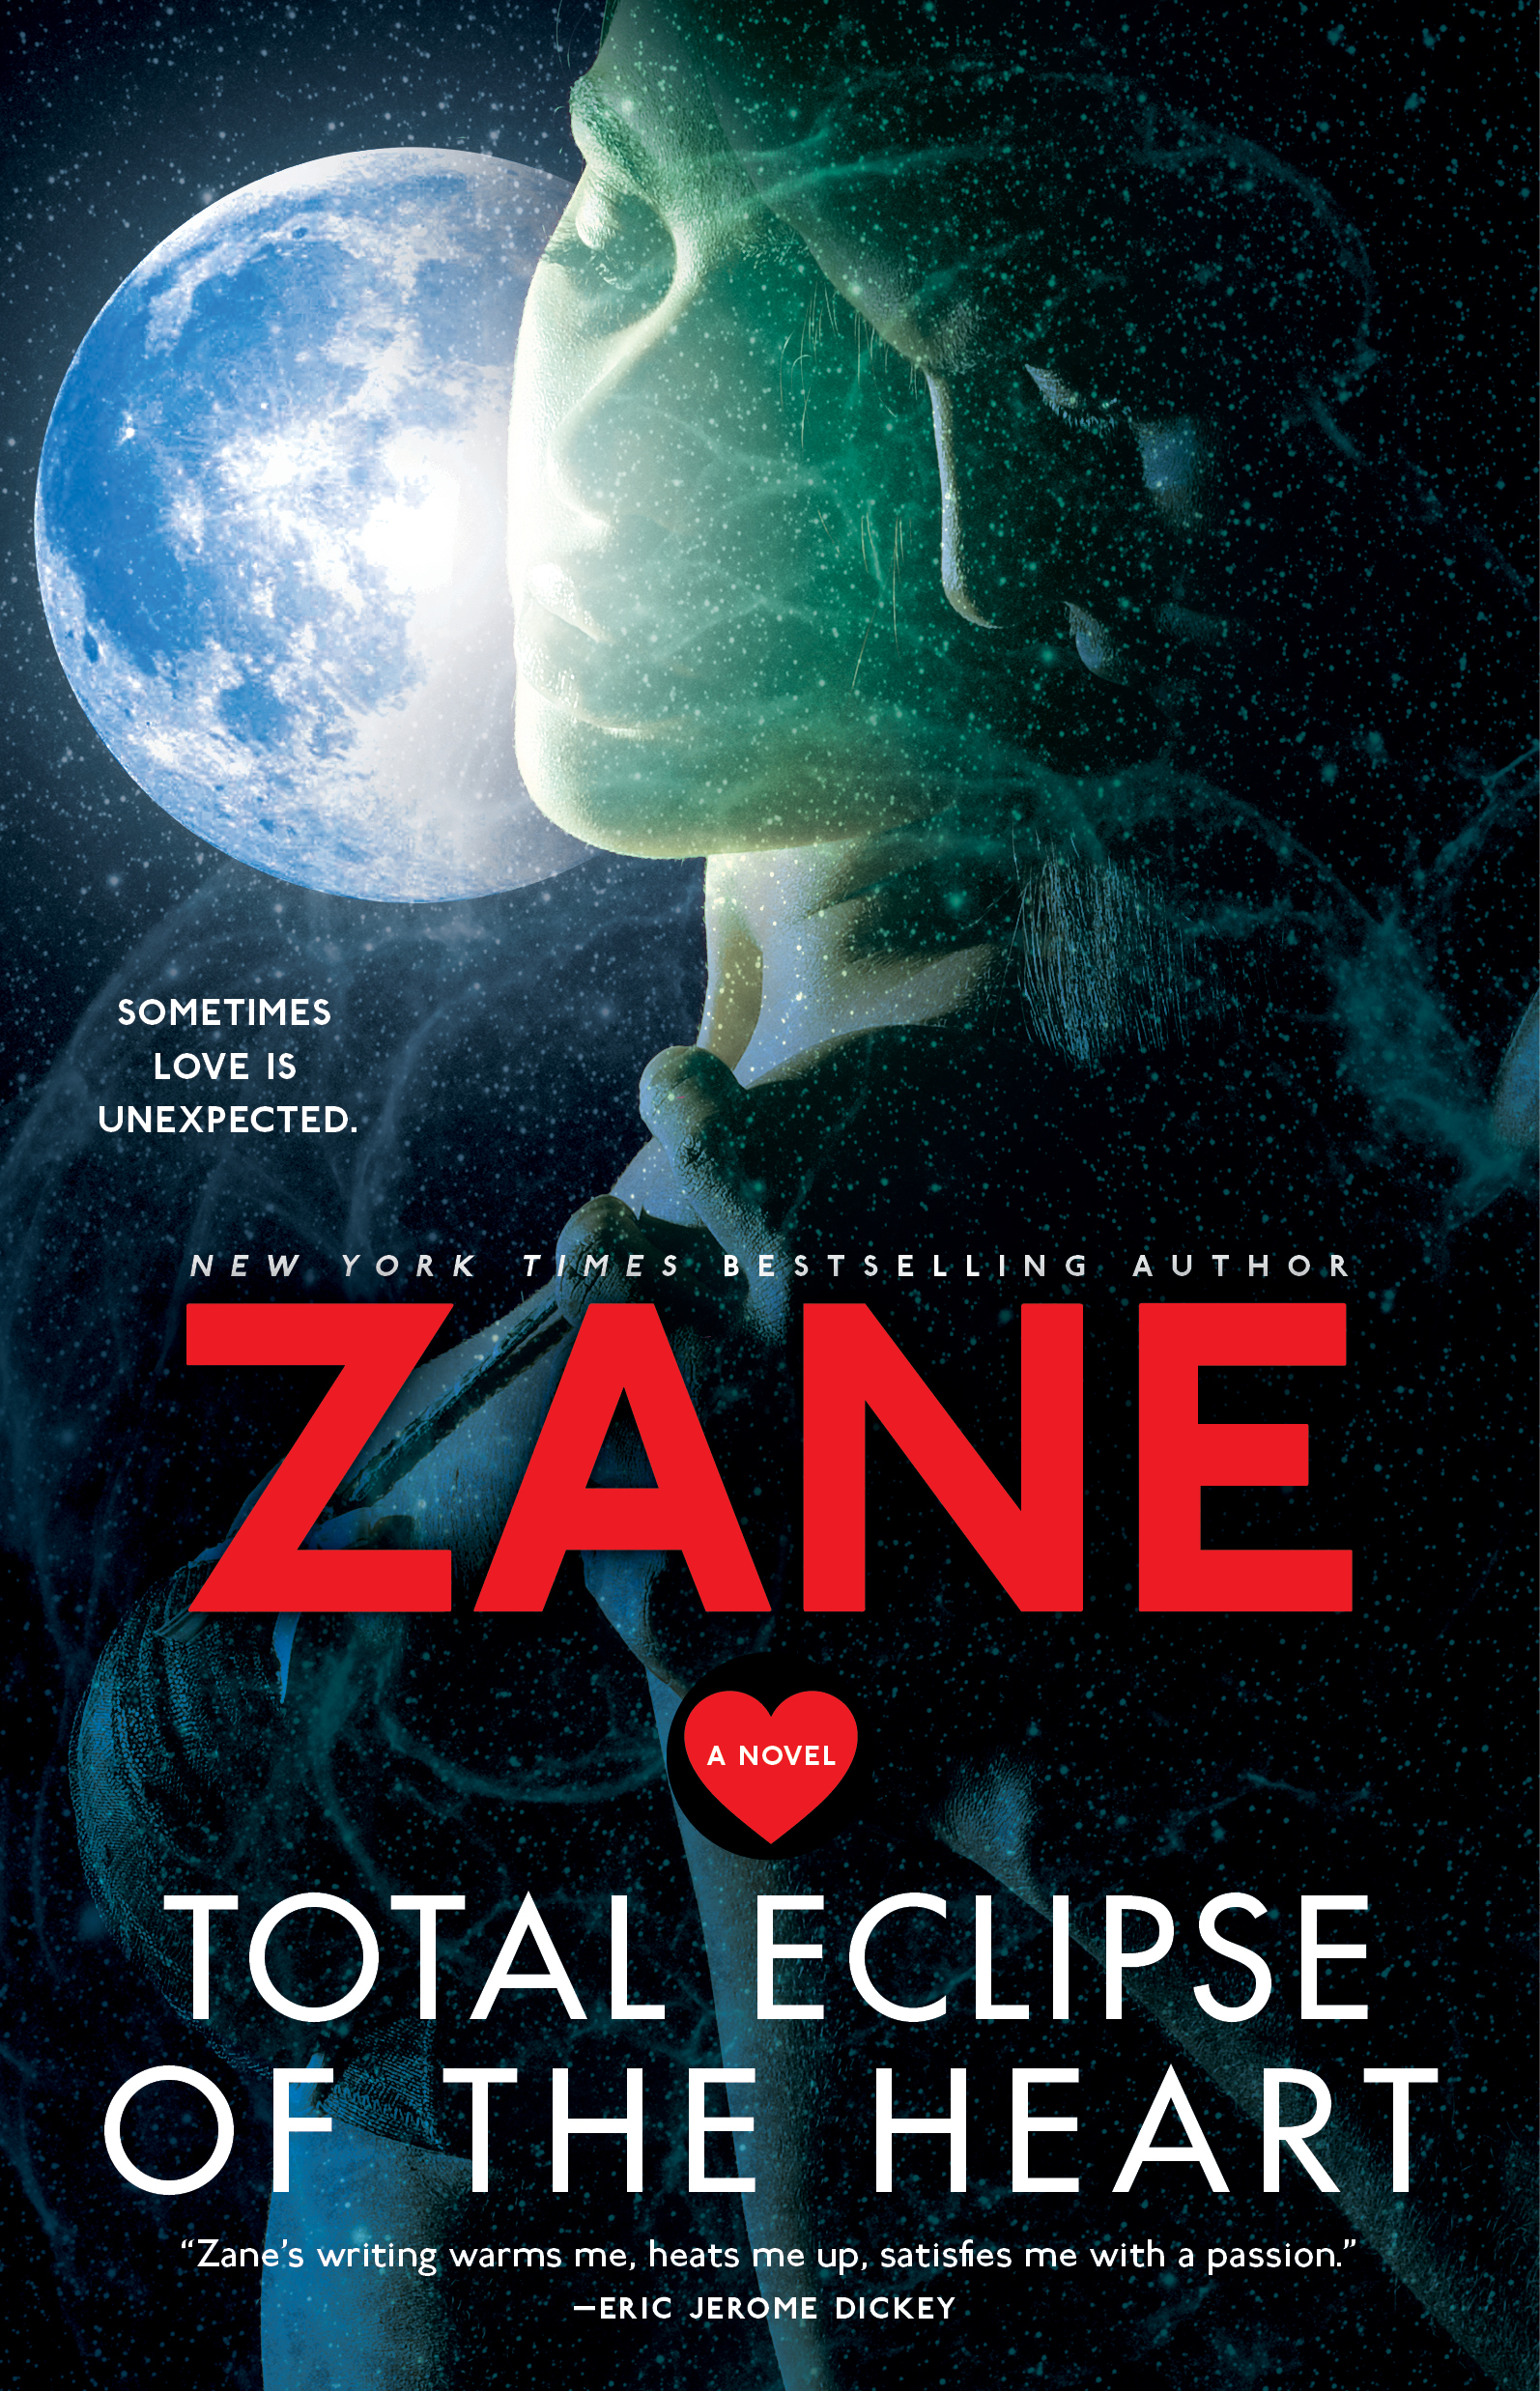 Zane Total Eclipse of the Heart